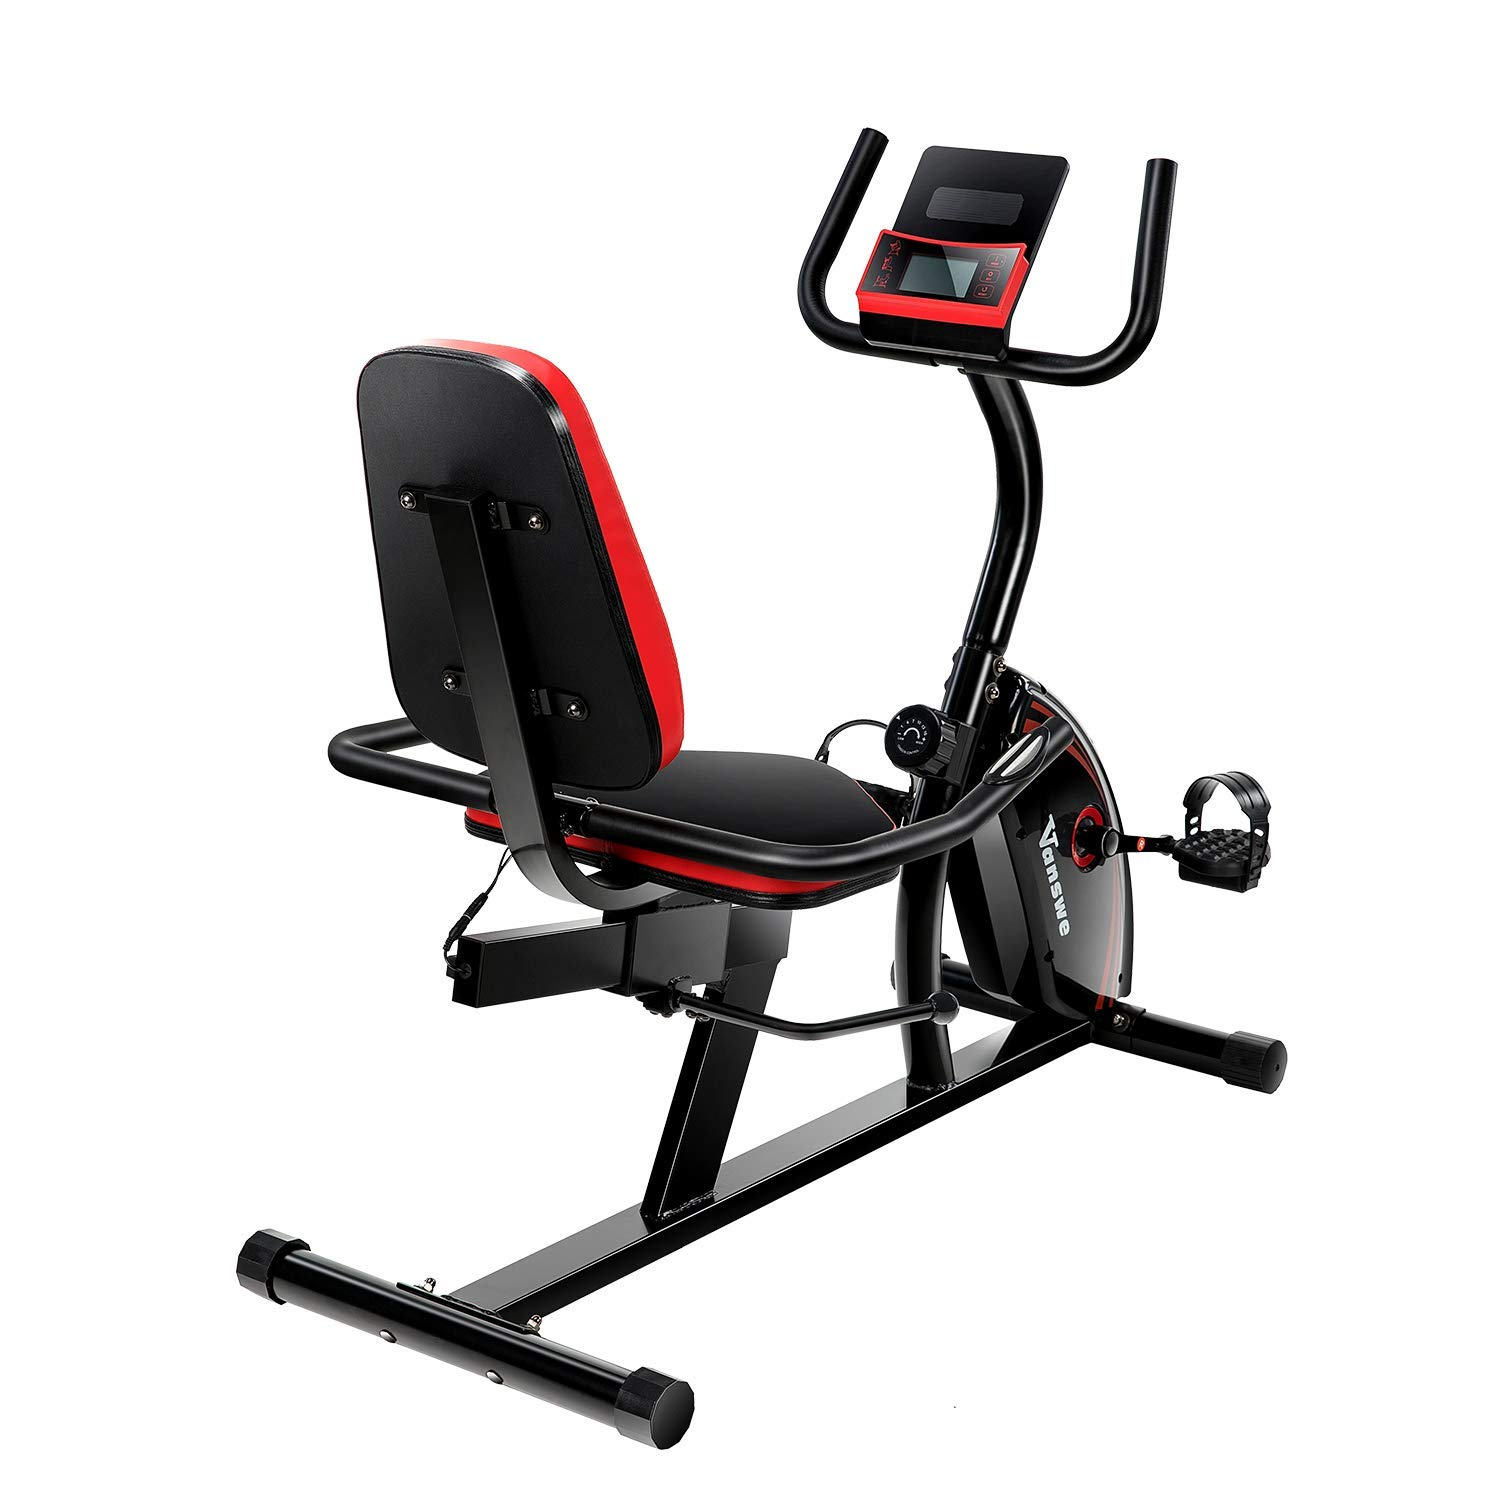 bdf800cfaa4 Get Quotations · Magnetic Tension Recumbent Bike Adjustable Resistance  Transport Wheels Exercise Bike Fitness Stationary Bicycle (Red